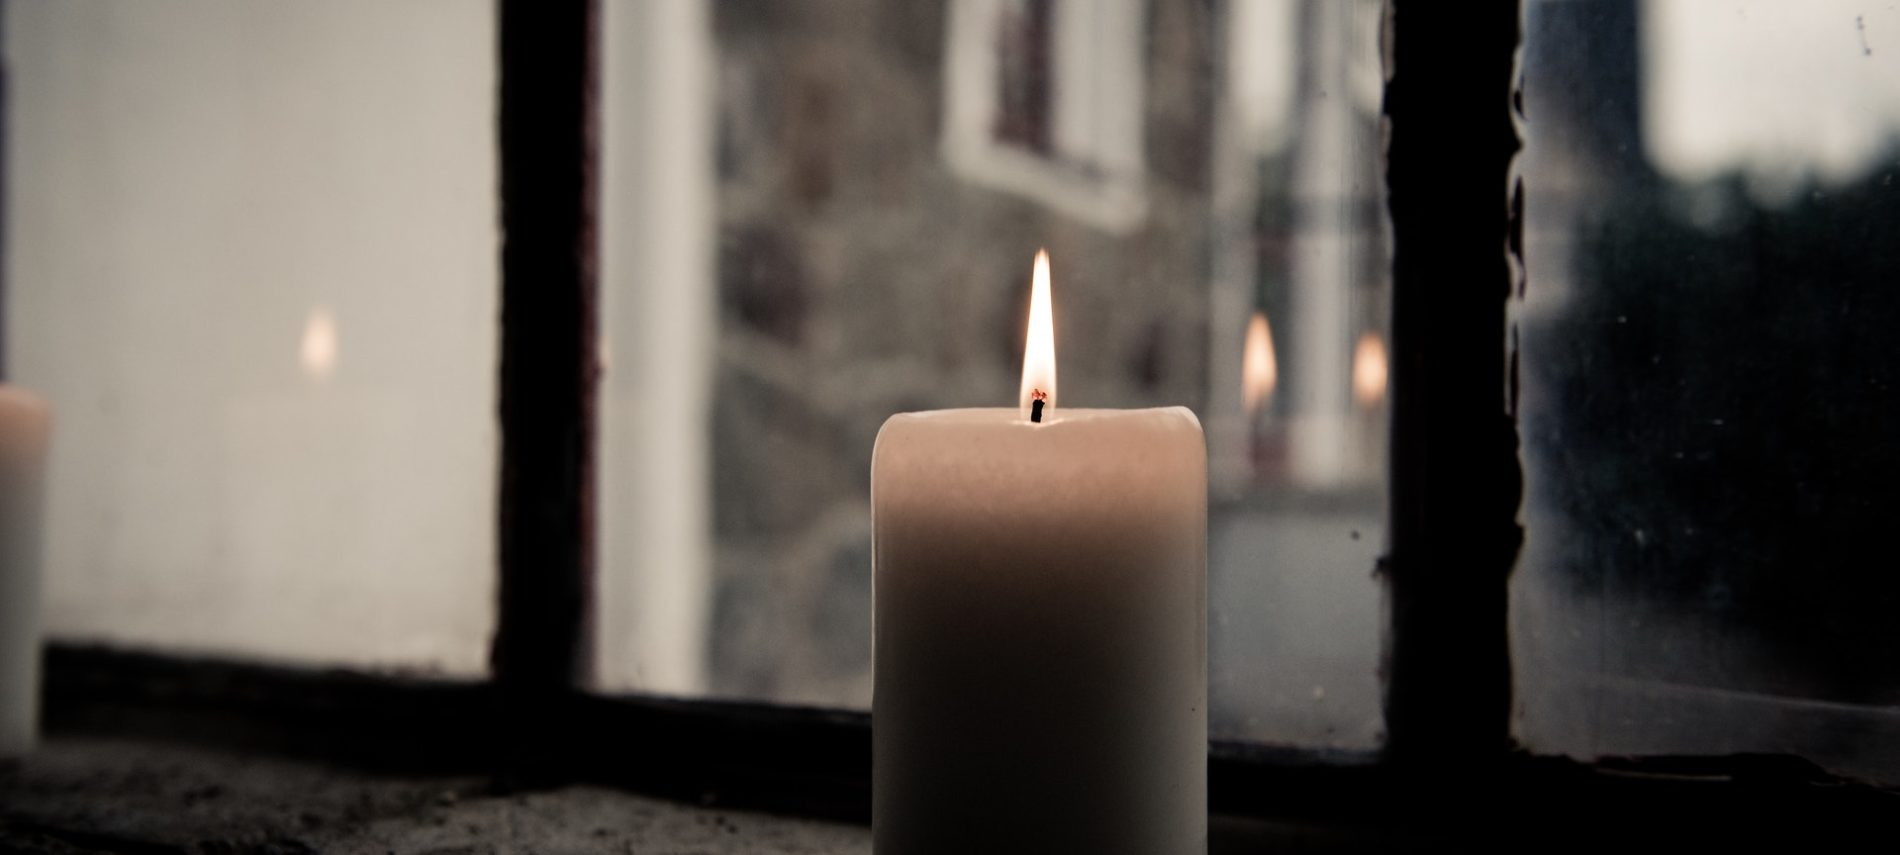 lighted cylinder candle in window looking out onto street scene at dusk